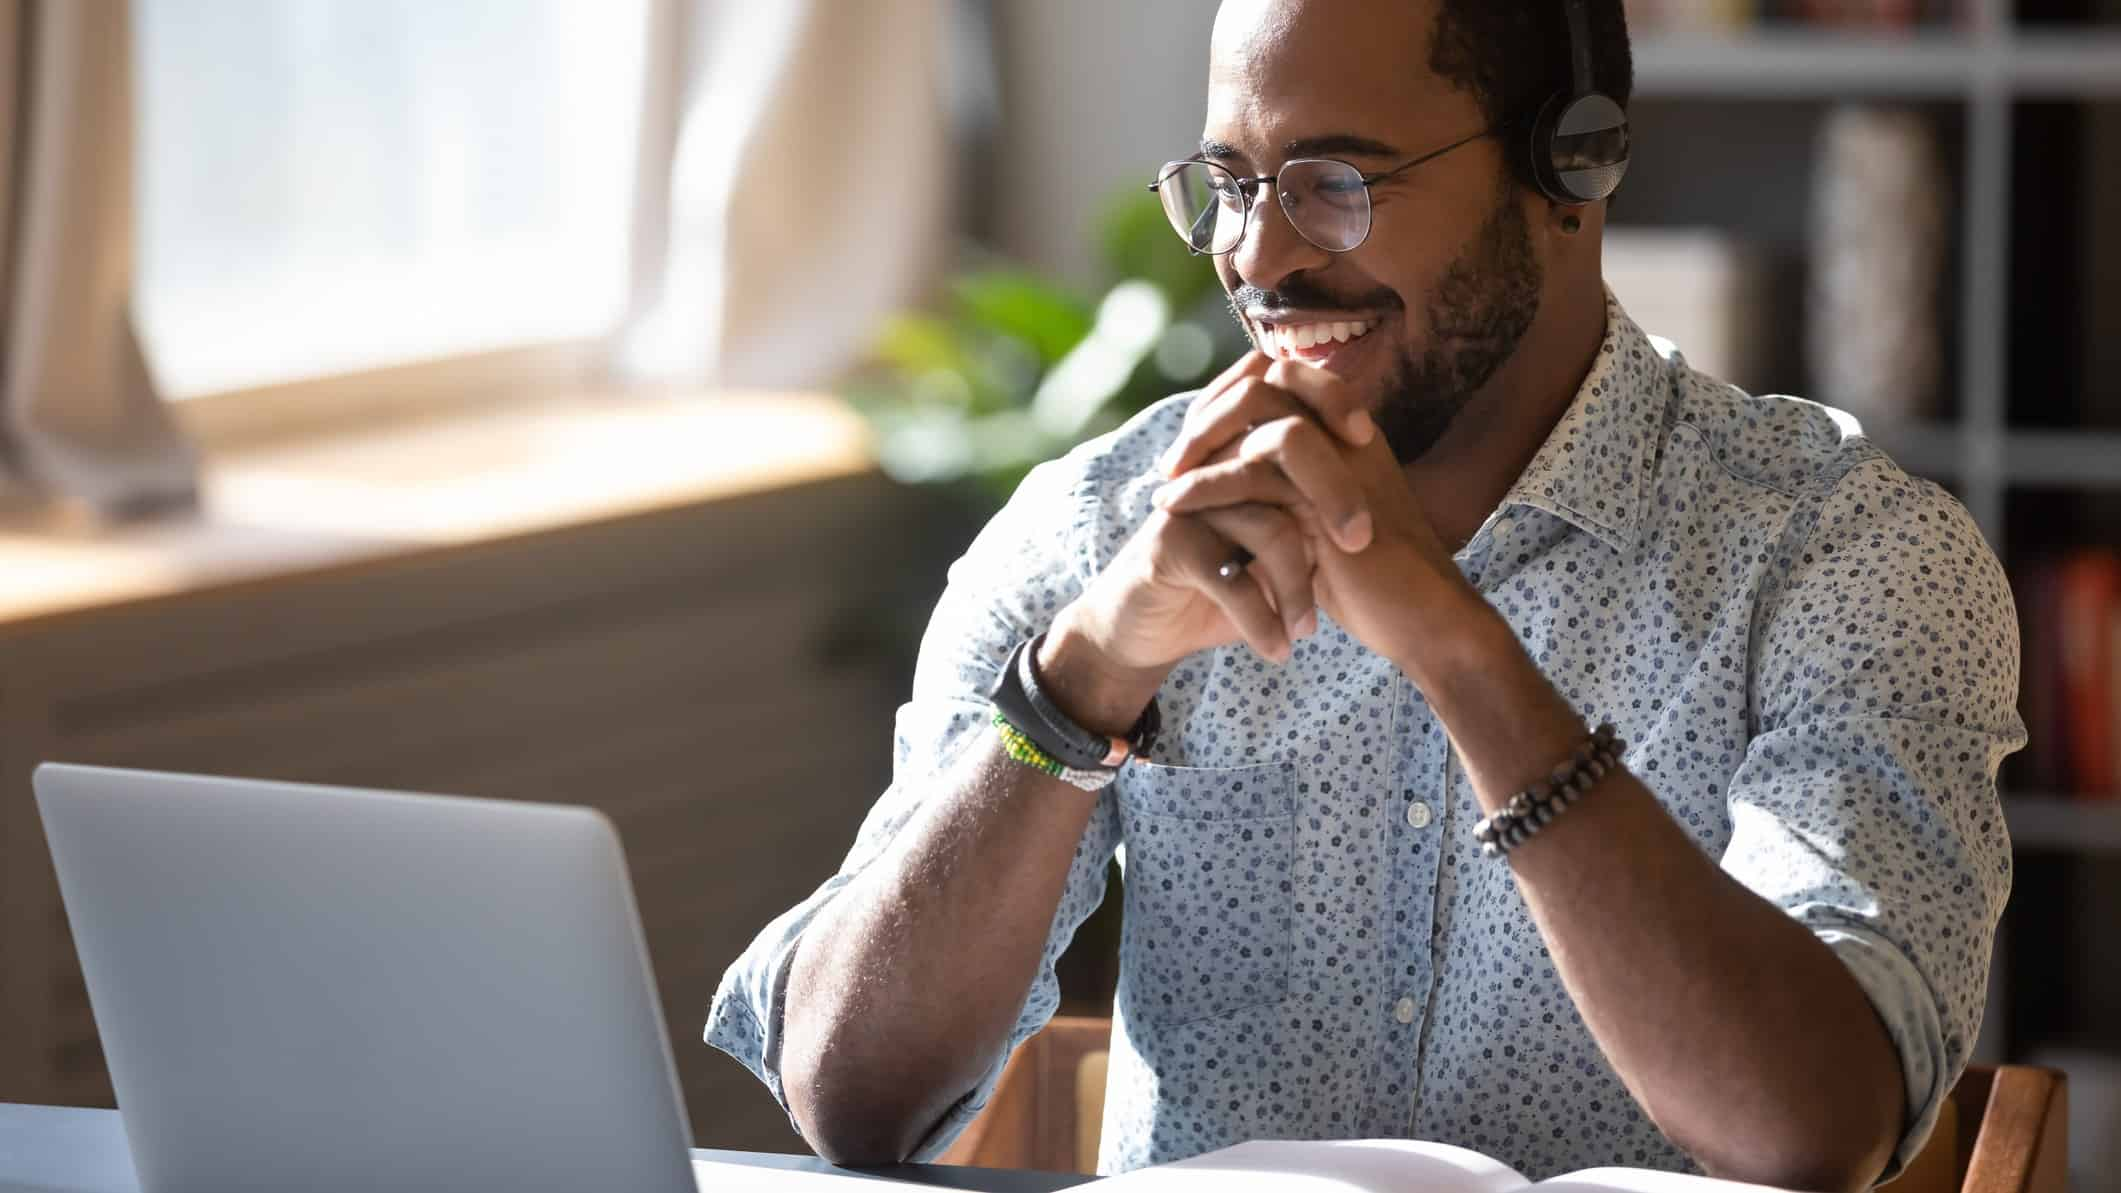 Young male investor smiling looking at laptop